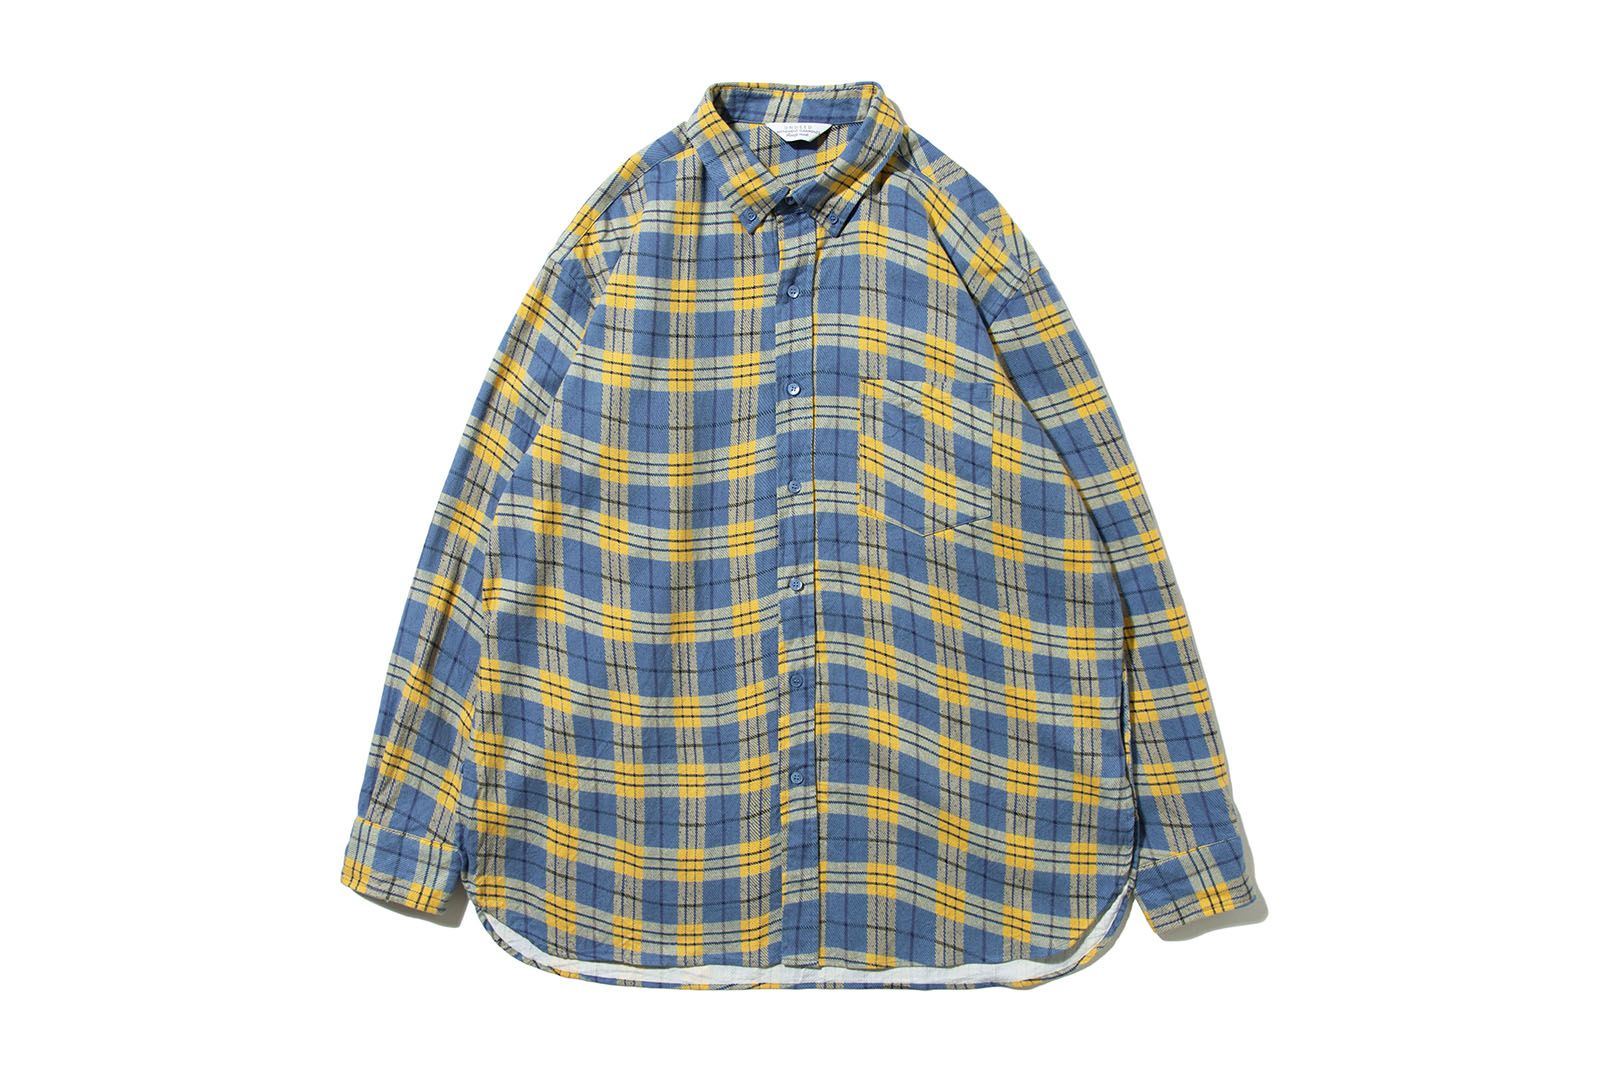 us1845-check-shirt_p2